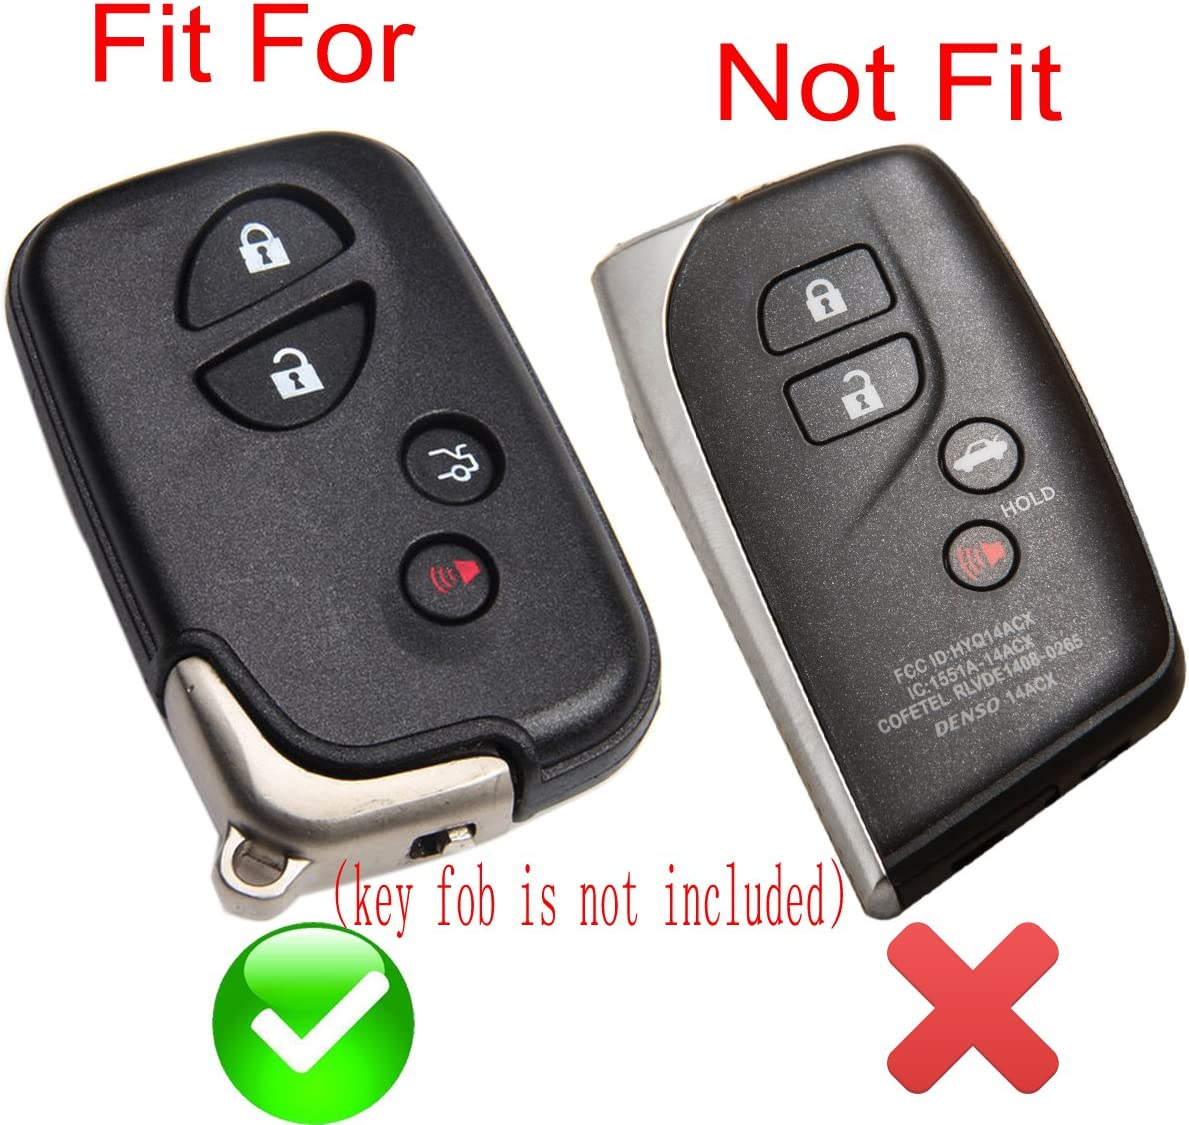 Coolbestda 2X Rubber Smart 4Buttons Key fob Protector Cover Case for Lexus RX350 IS250 GS300 GX460 GS460 IS350 is-C is-F LS600h ES350 GS300